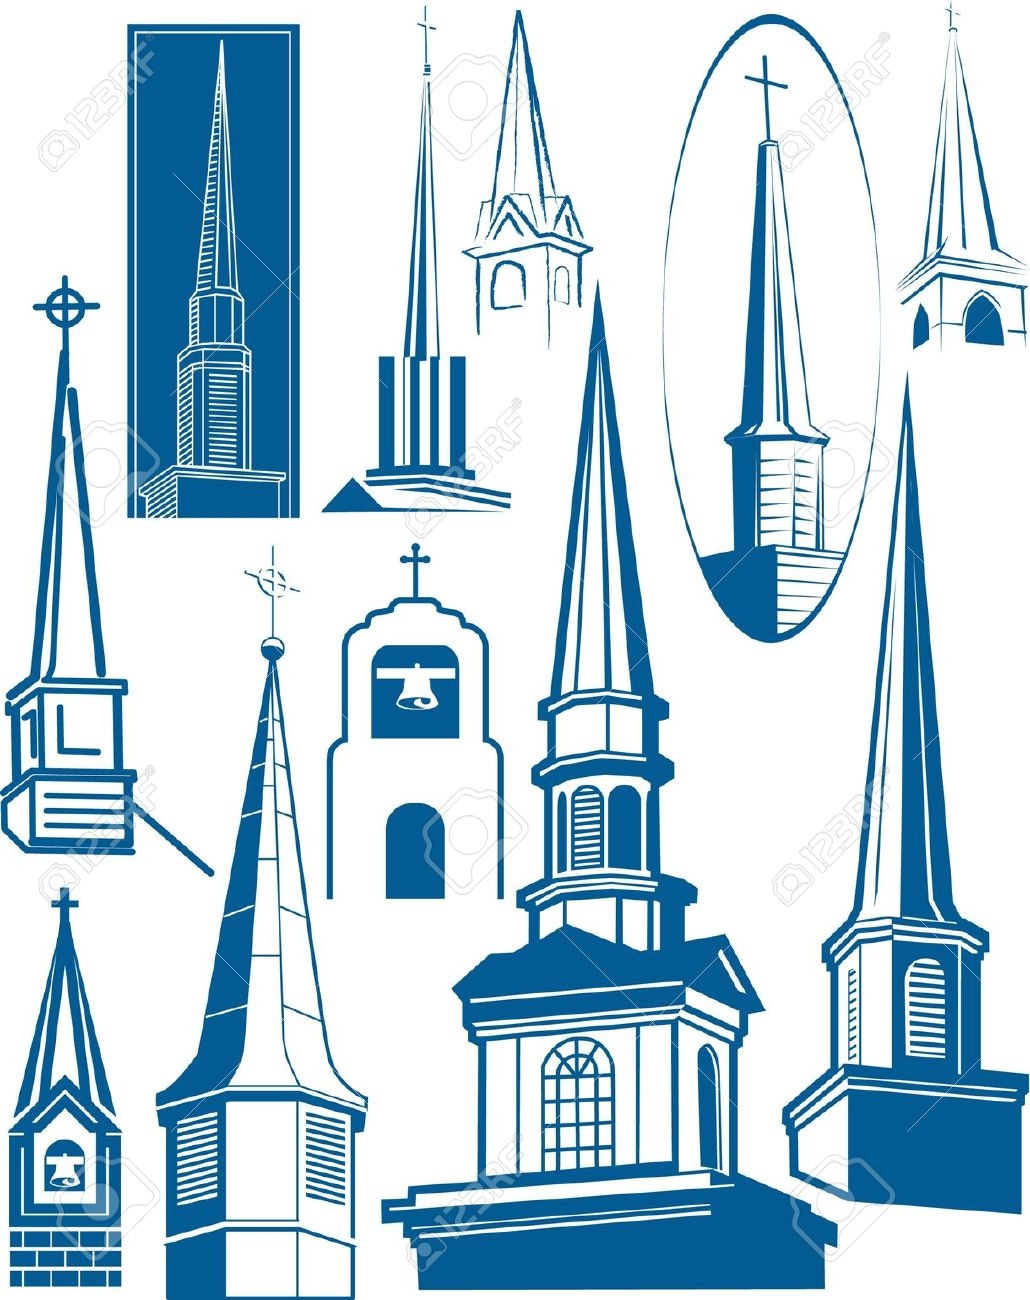 Steeple Collection Royalty Free Cliparts, Vectors, And Stock.